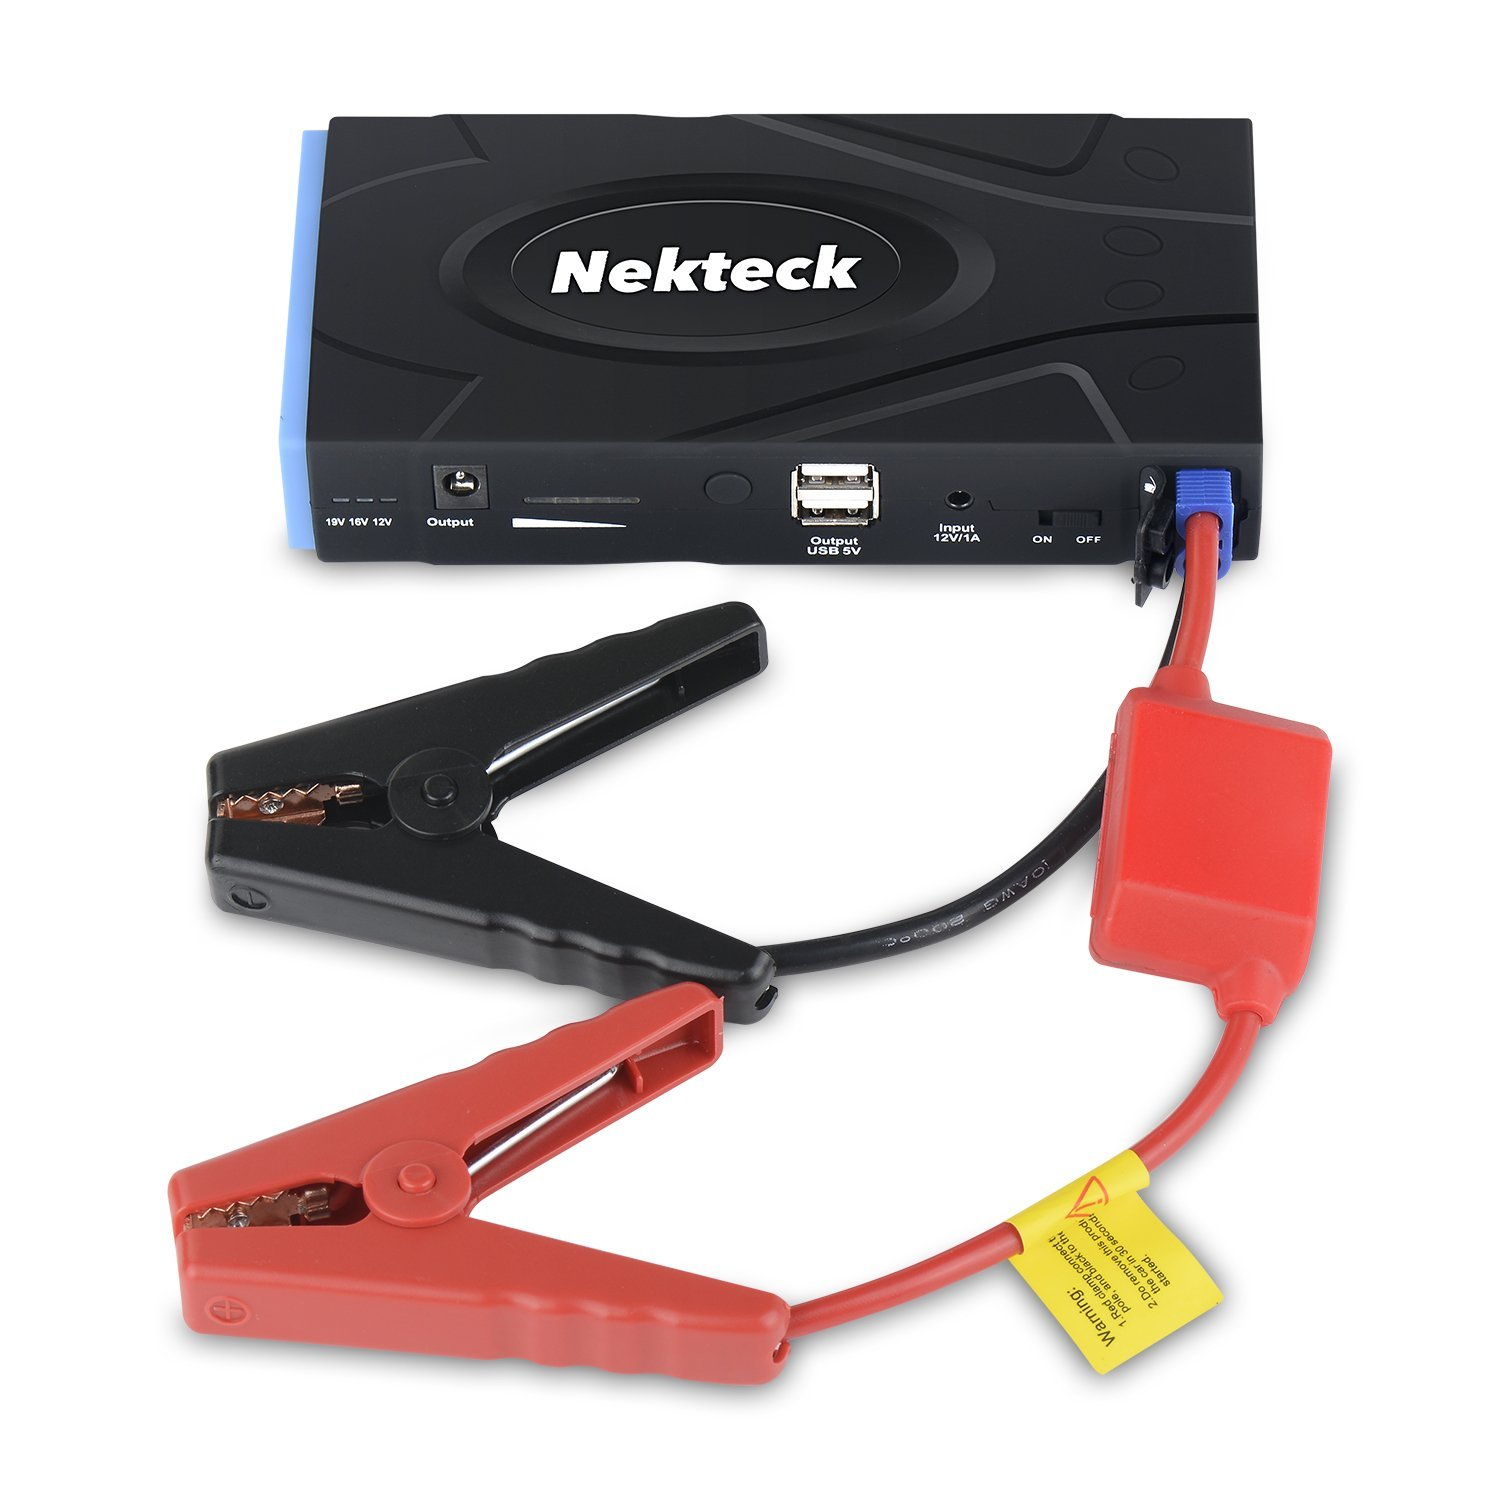 Nekteck Multifunction Car Jump Starter Portable Power Bank External Battery Charger 600A Peak with 16800mAh - Emergency Auto Jump Starter for Truck Van SUV Laptop Smartphone USB Device and More